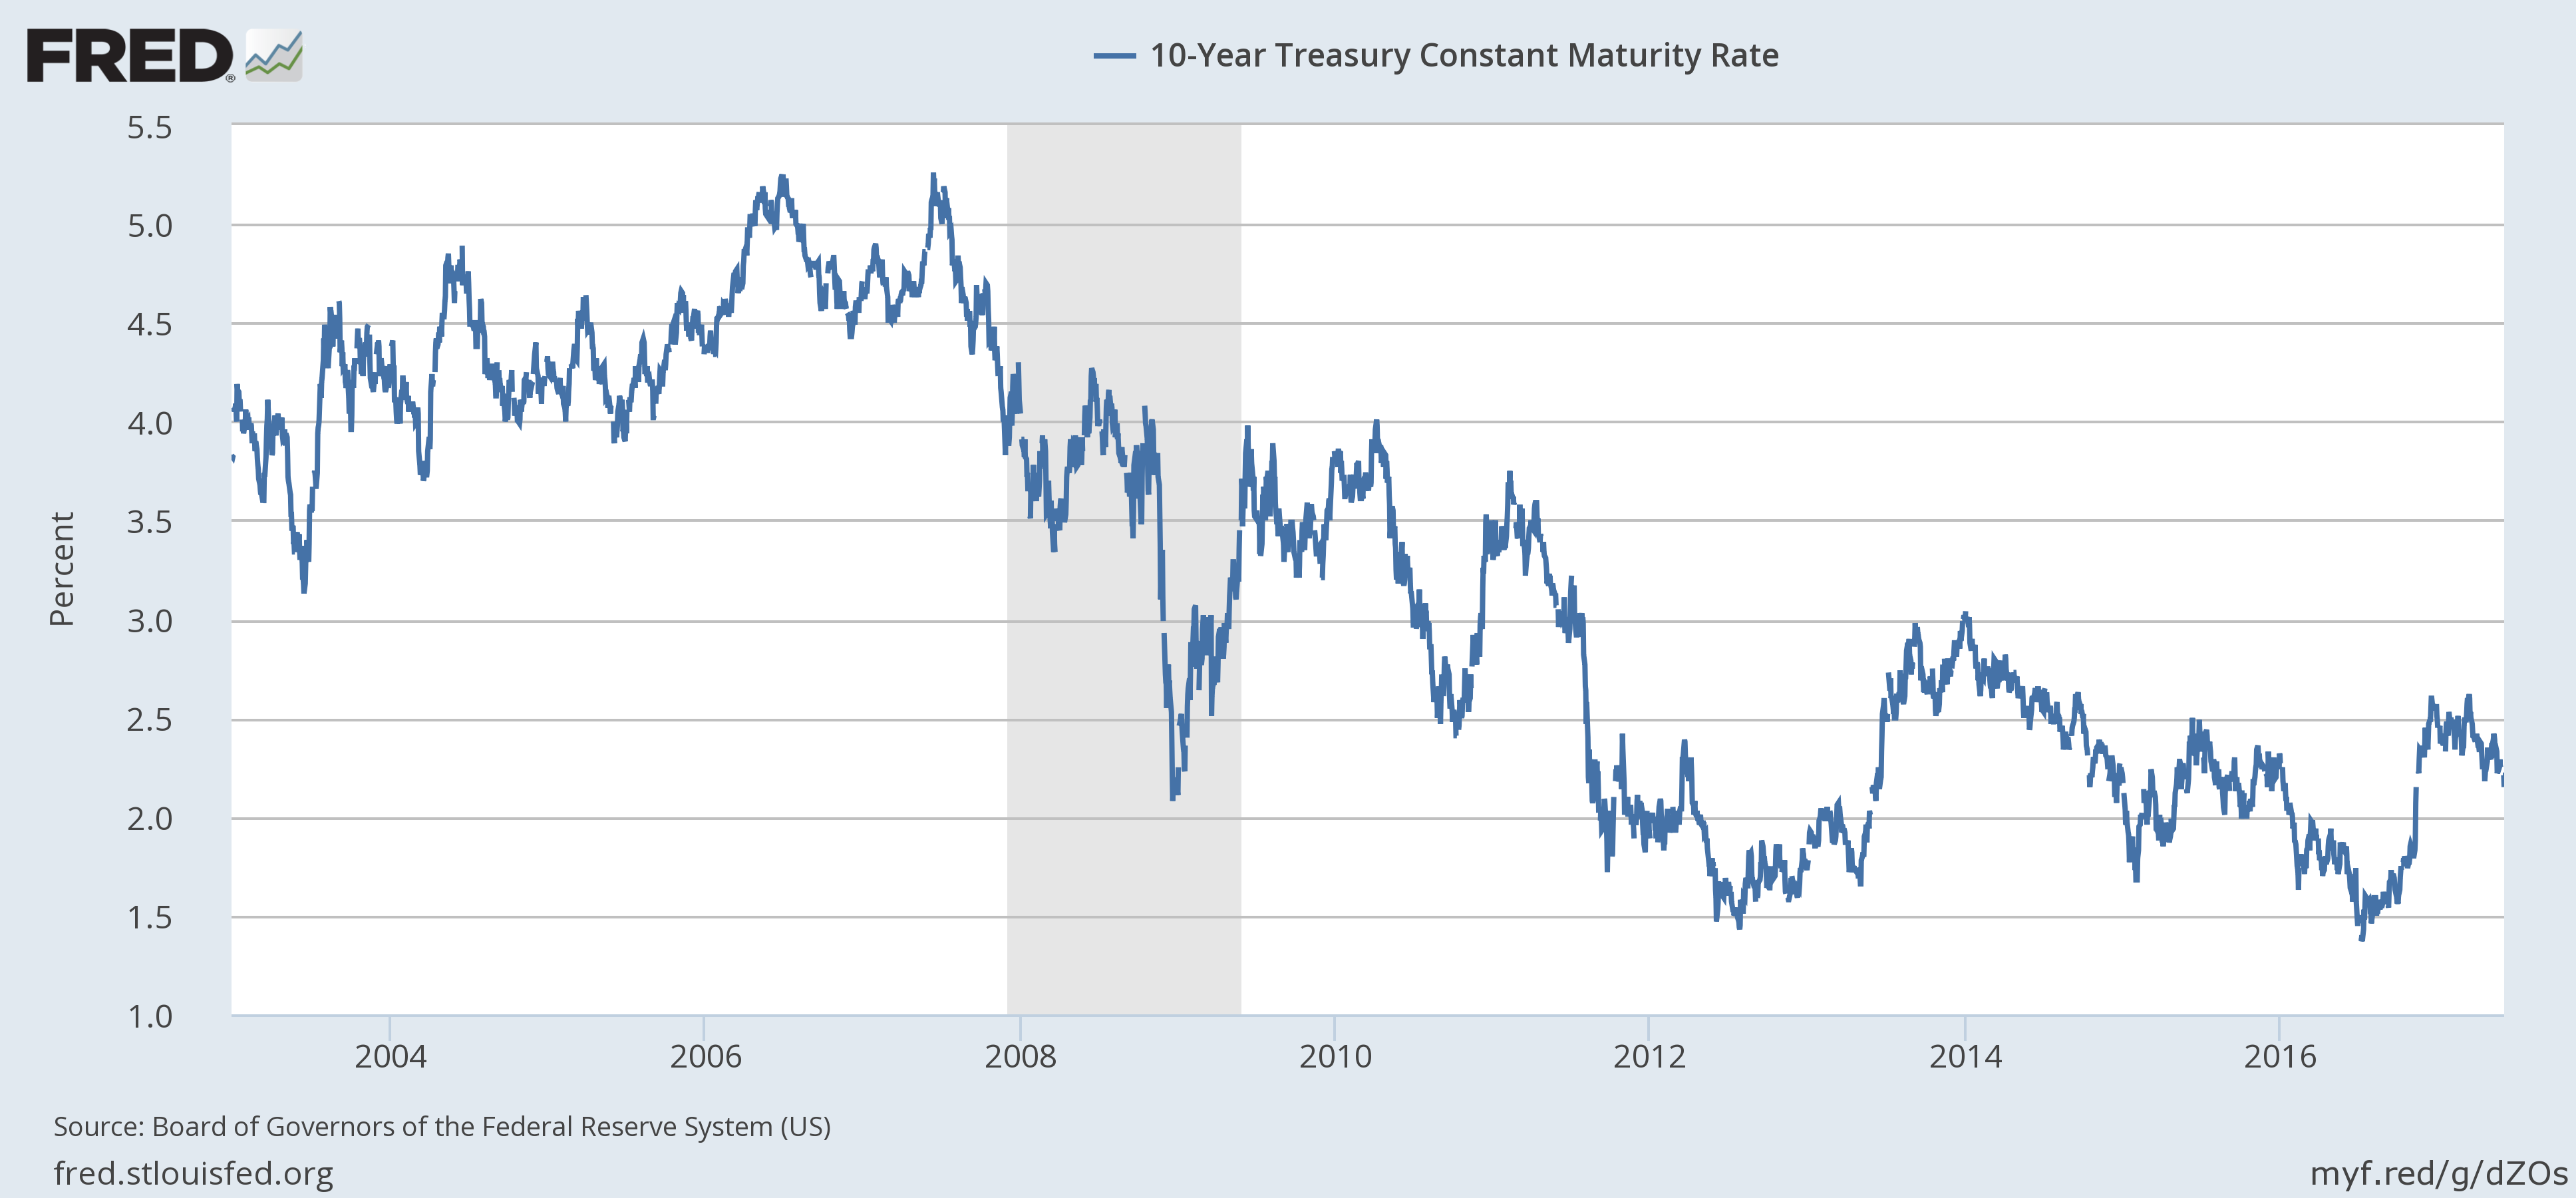 10-Year Treasury Constant Maturity Rate, 2004 - 2017